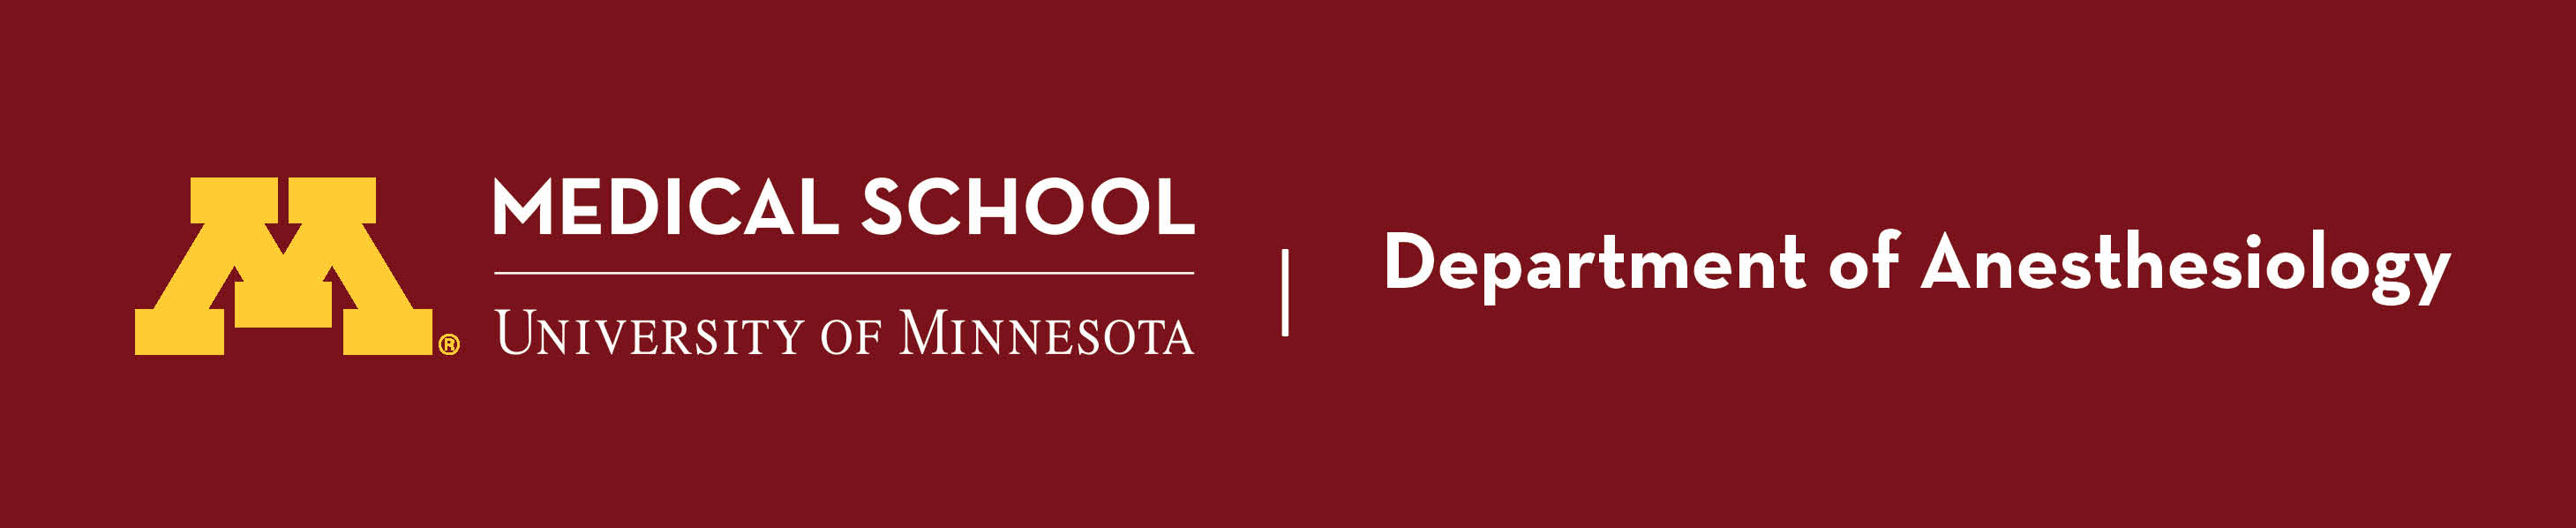 guidelines, logos and templates | med hub - university of minnesota, Powerpoint templates